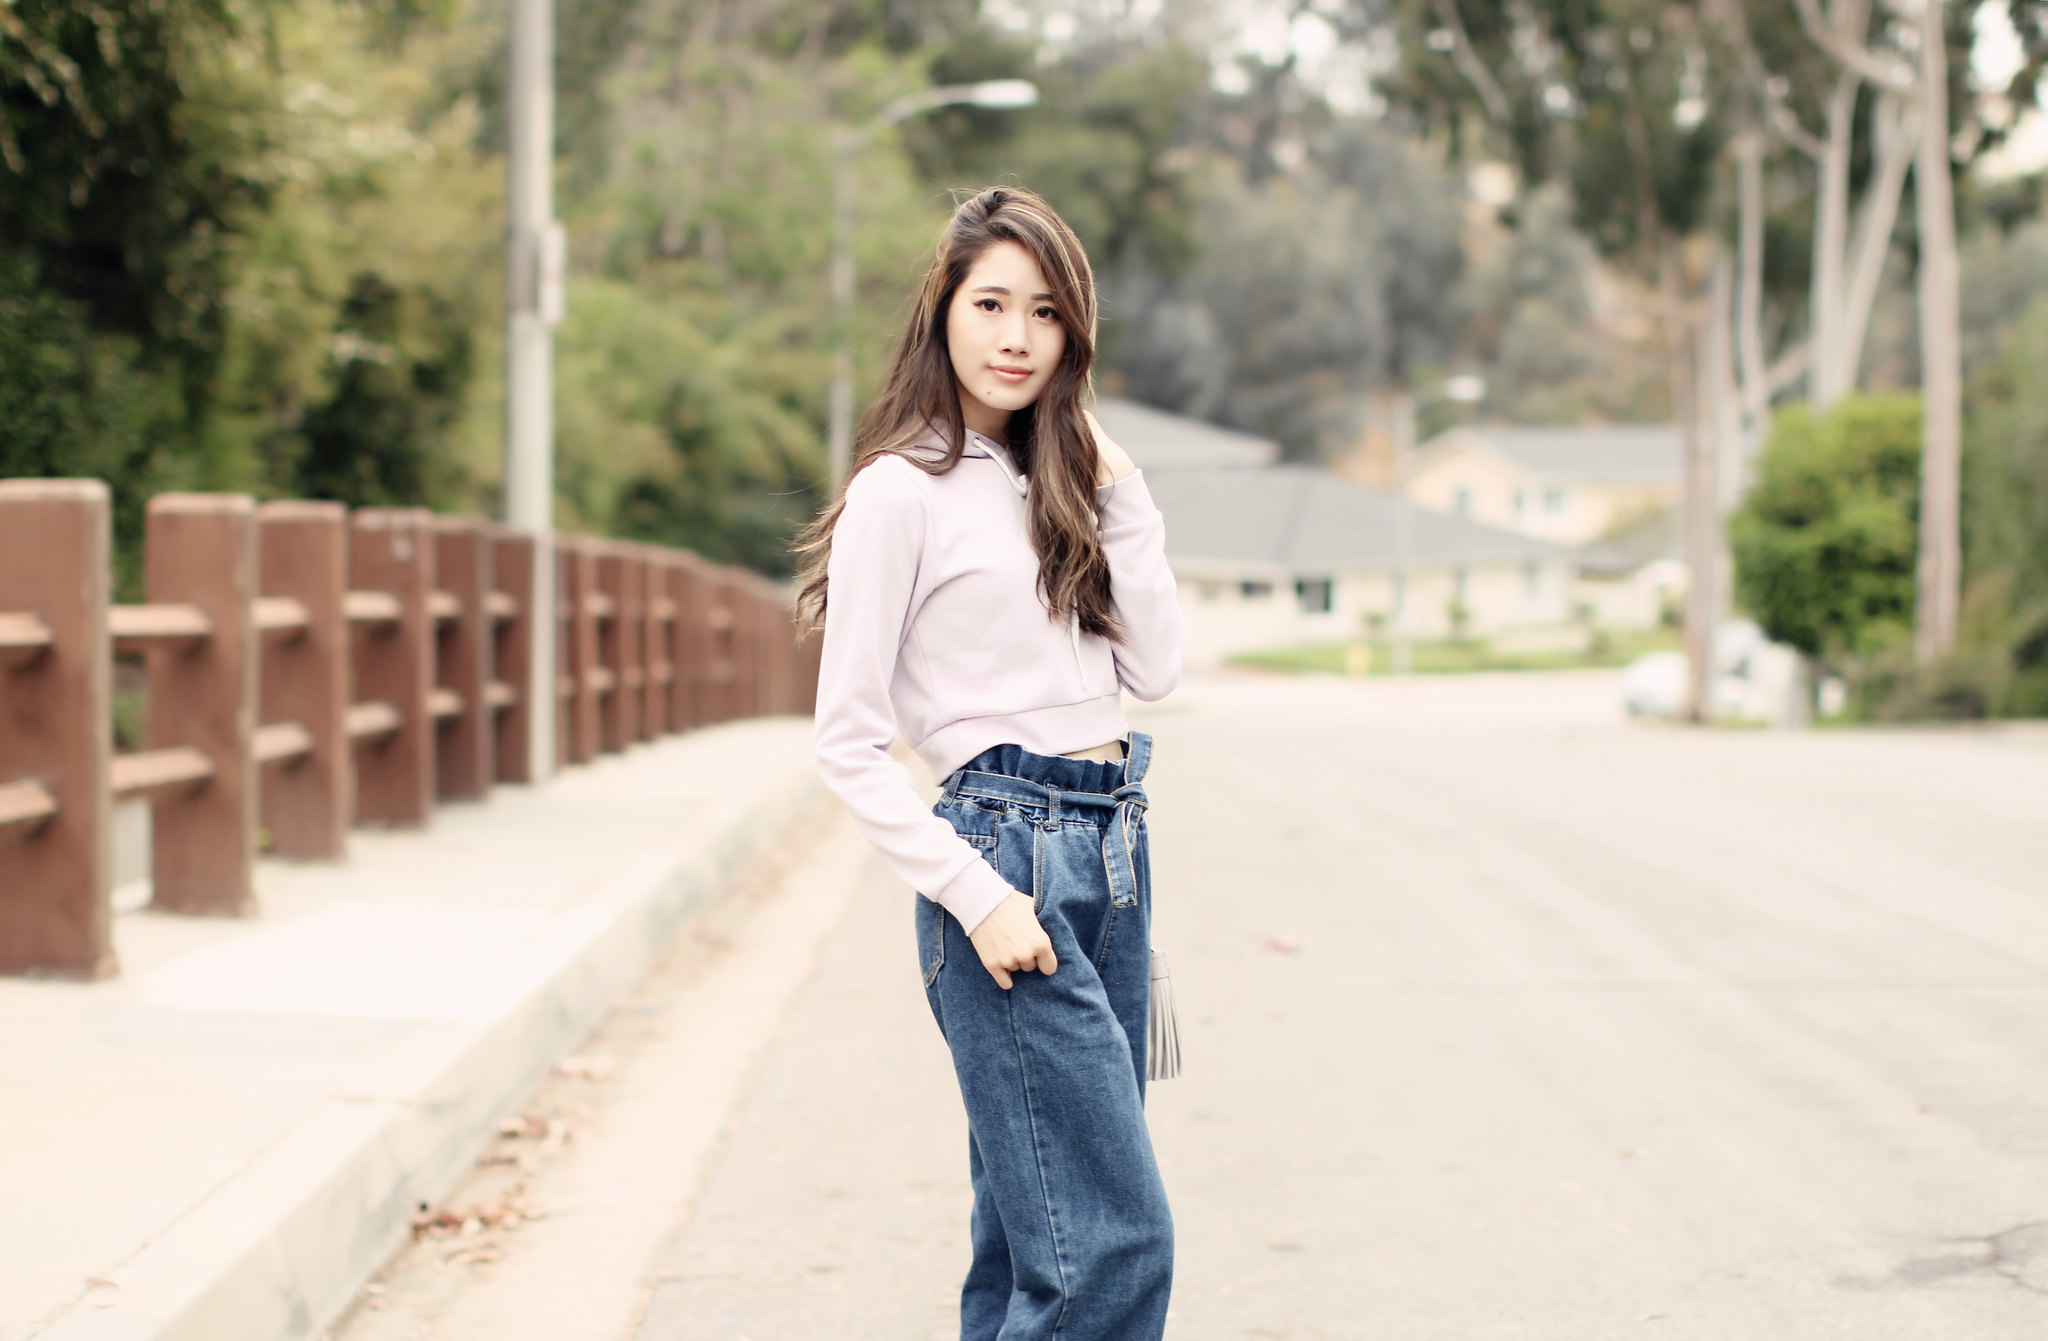 5058-ootd-fashion-style-outfitoftheday-wiwt-streetstyle-zara-f21xme-denim-thrifted-guess-koreanfashion-lookbook-elizabeeetht-clothestoyouuu